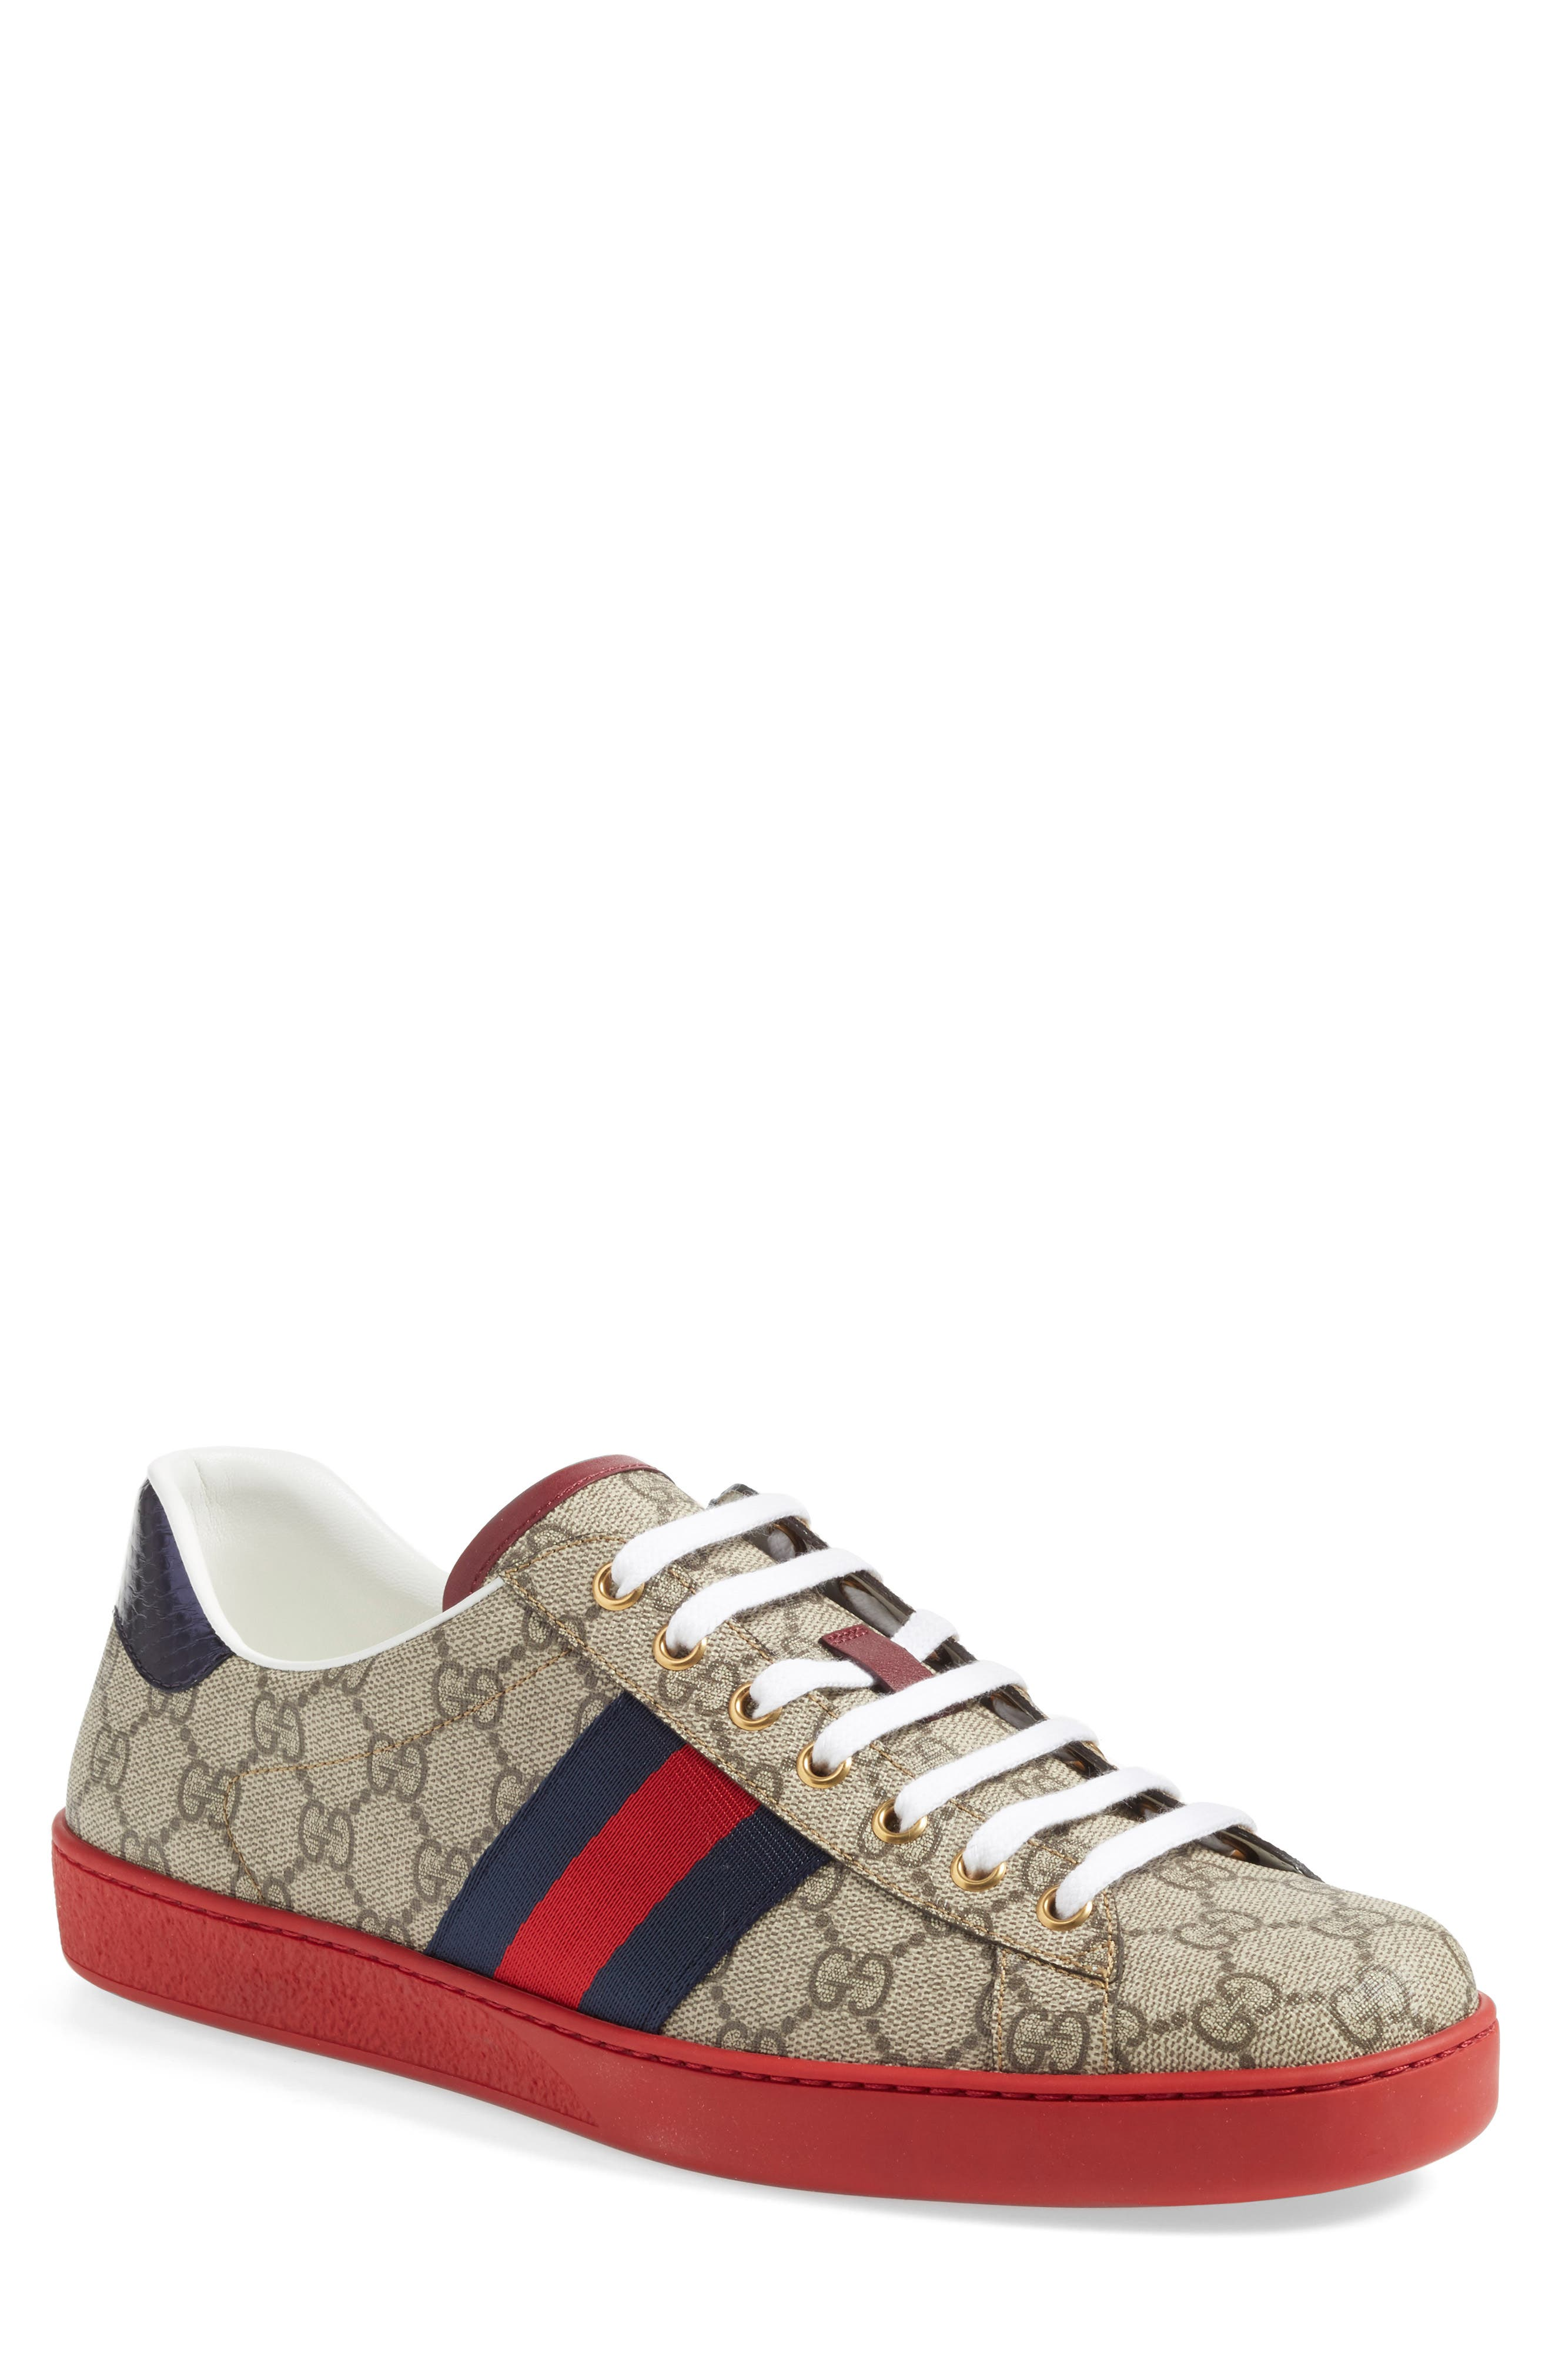 gucci shoes nordstrom price